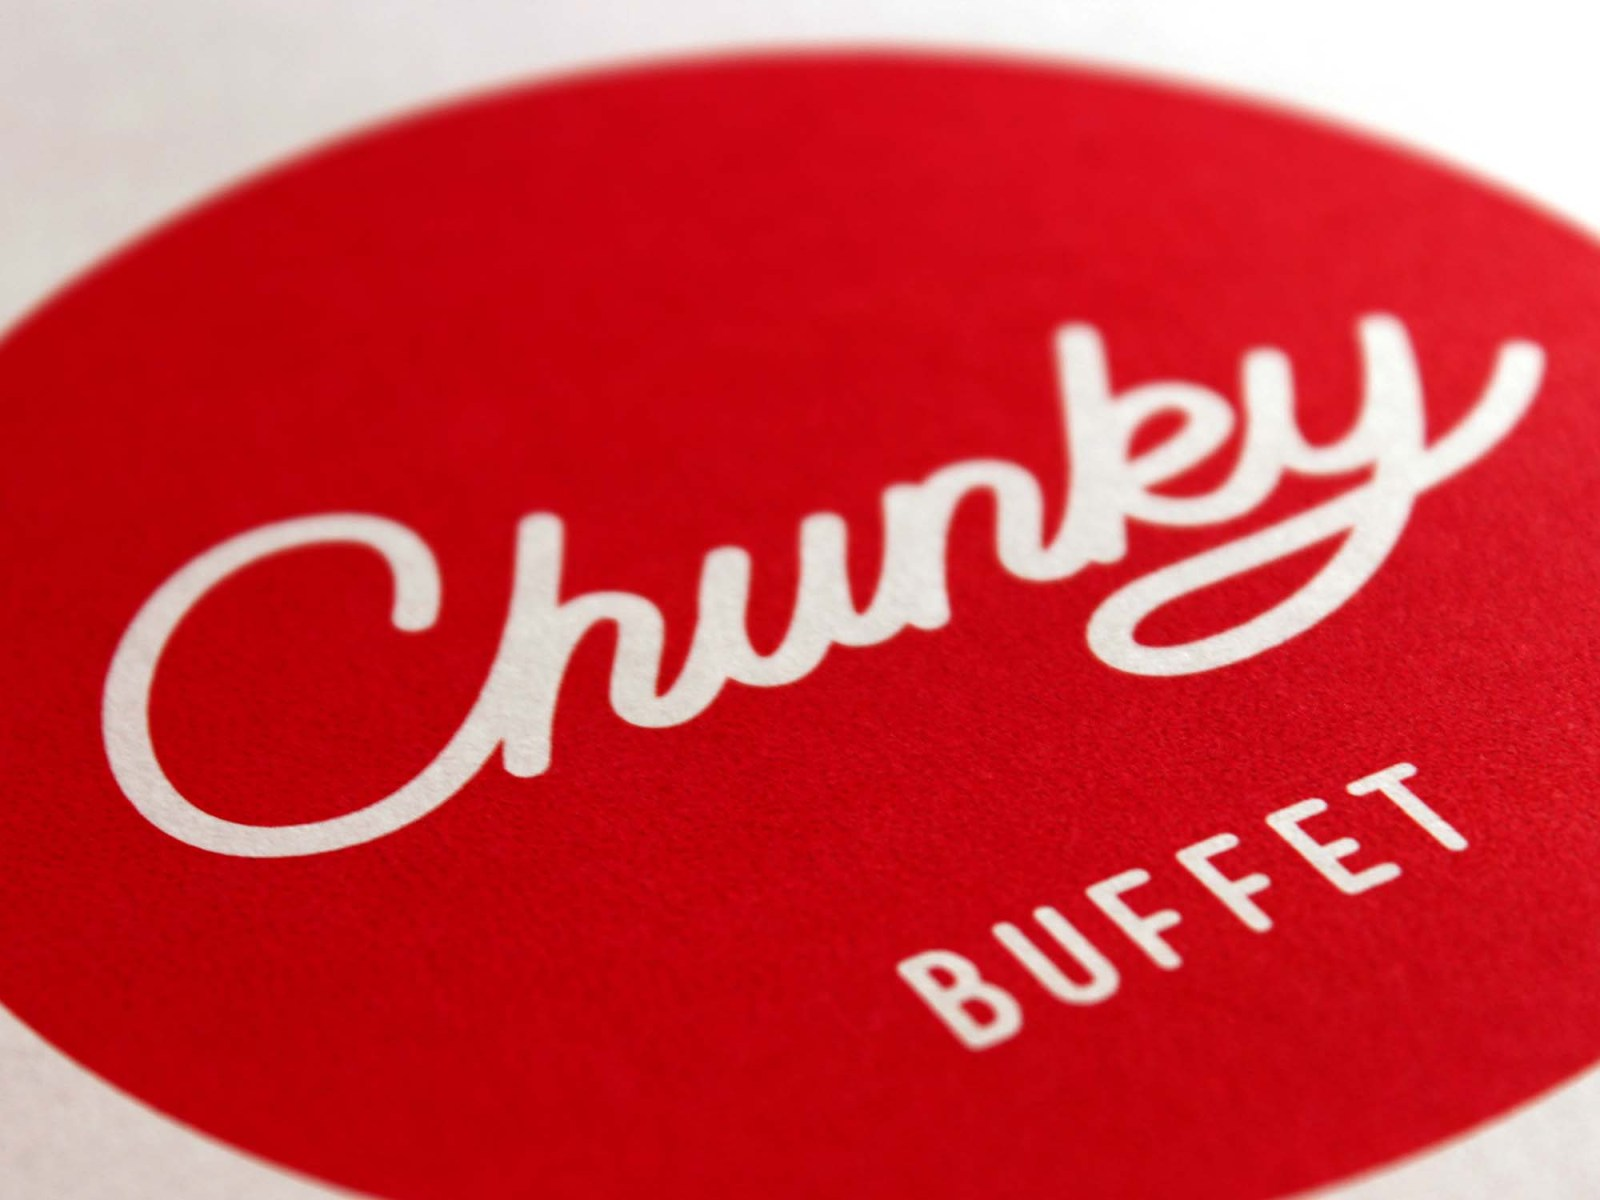 Chunky-Buffet-logo_0003_Layer 14